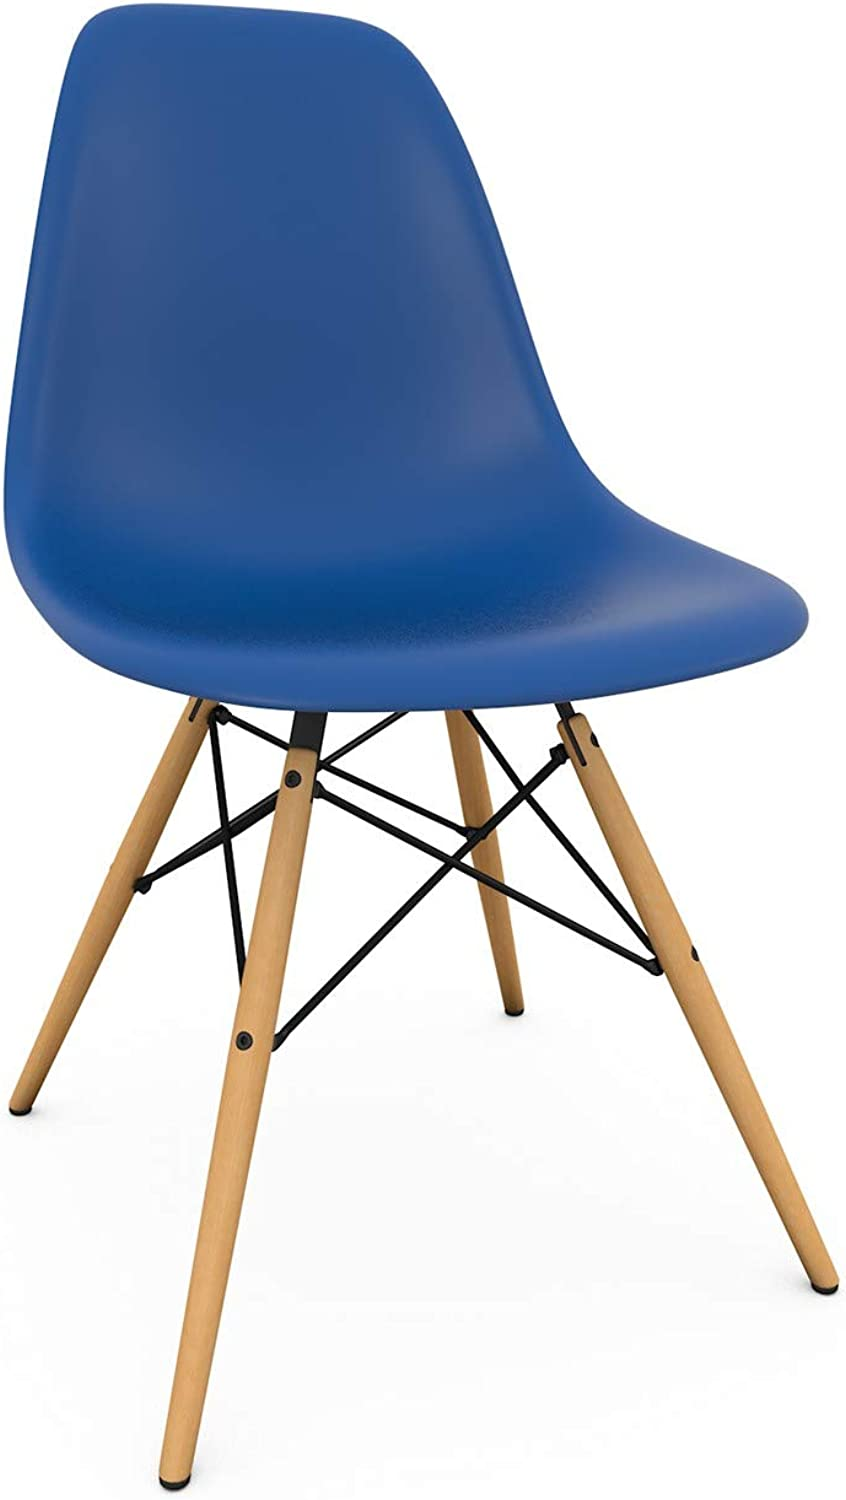 Take Me Home Furniture Eames Style Eiffel Dinning Chair in Royal bluee with Natural Wood Legs